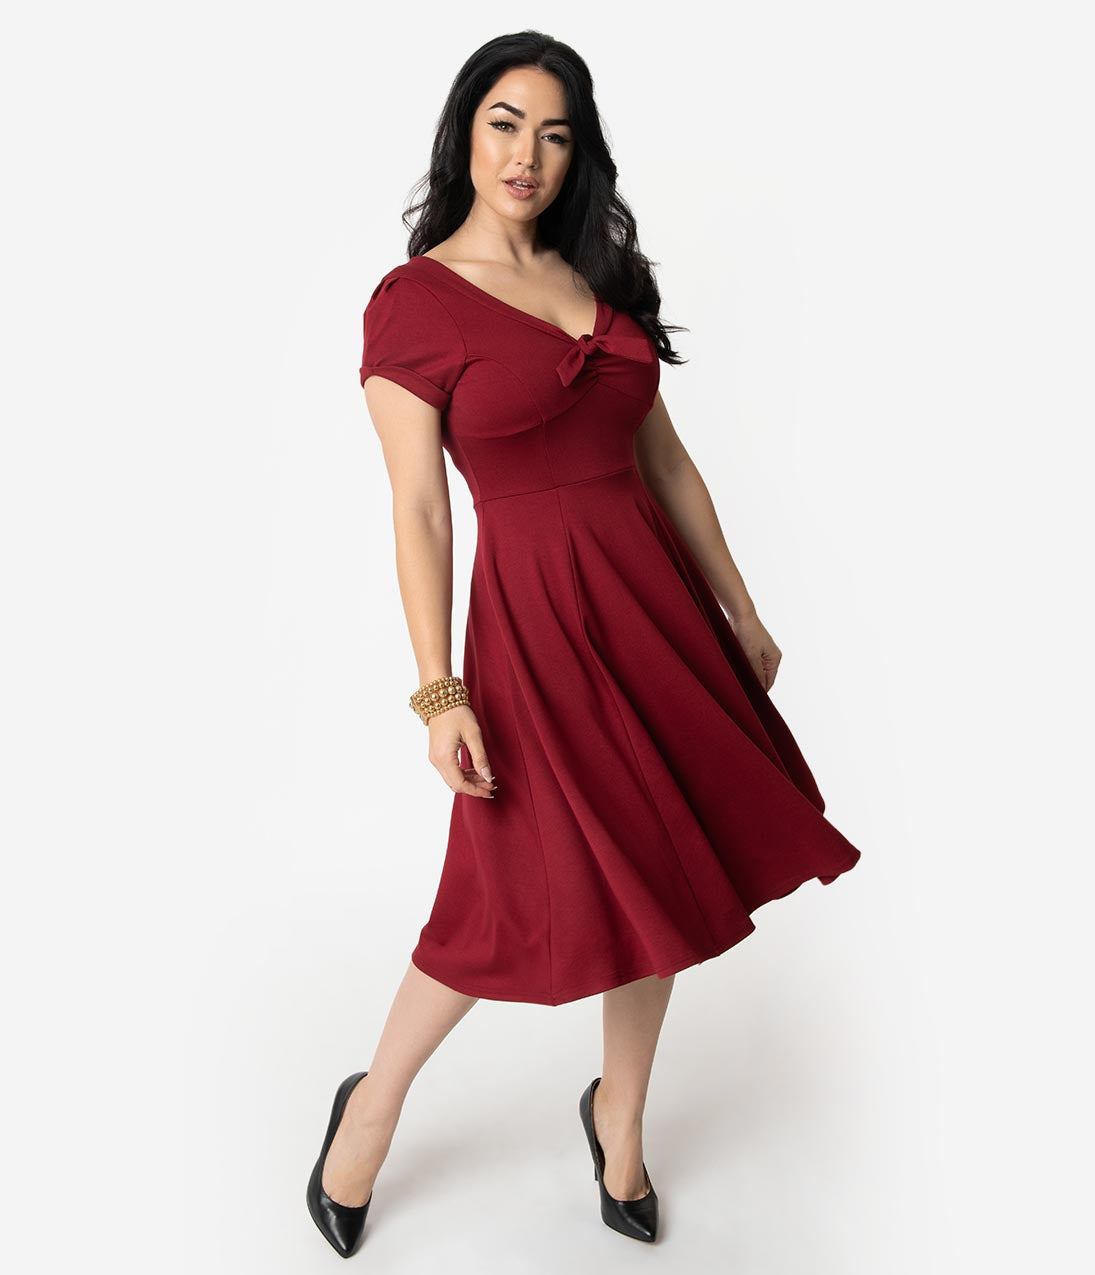 1940s Dresses | 40s Dress, Swing Dress Unique Vintage 1940S Style Burgundy Knit Short Sleeve Natalie Swing Dress $88.00 AT vintagedancer.com